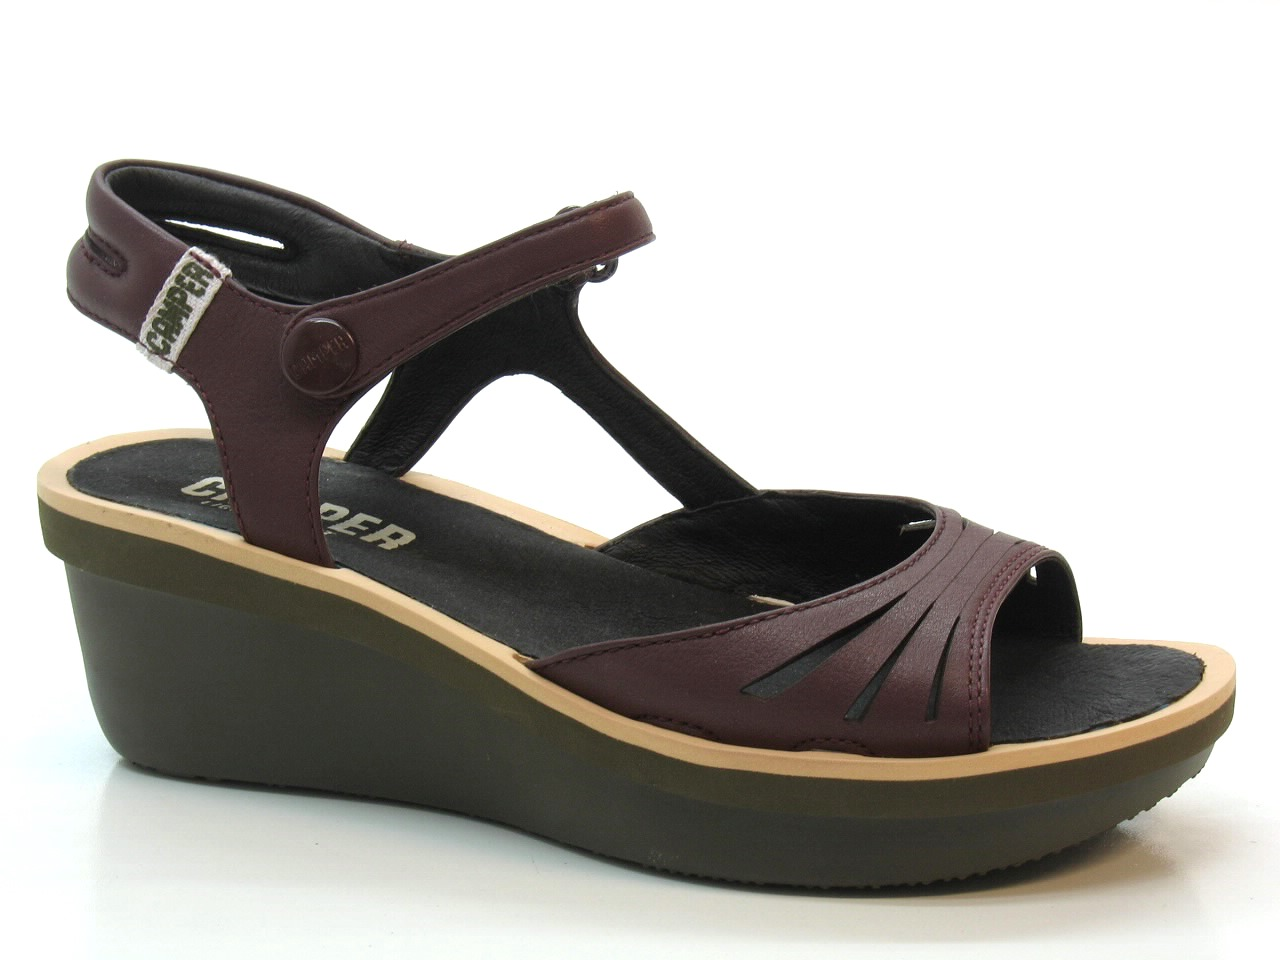 Wedge Sandals Camper - 623 21730